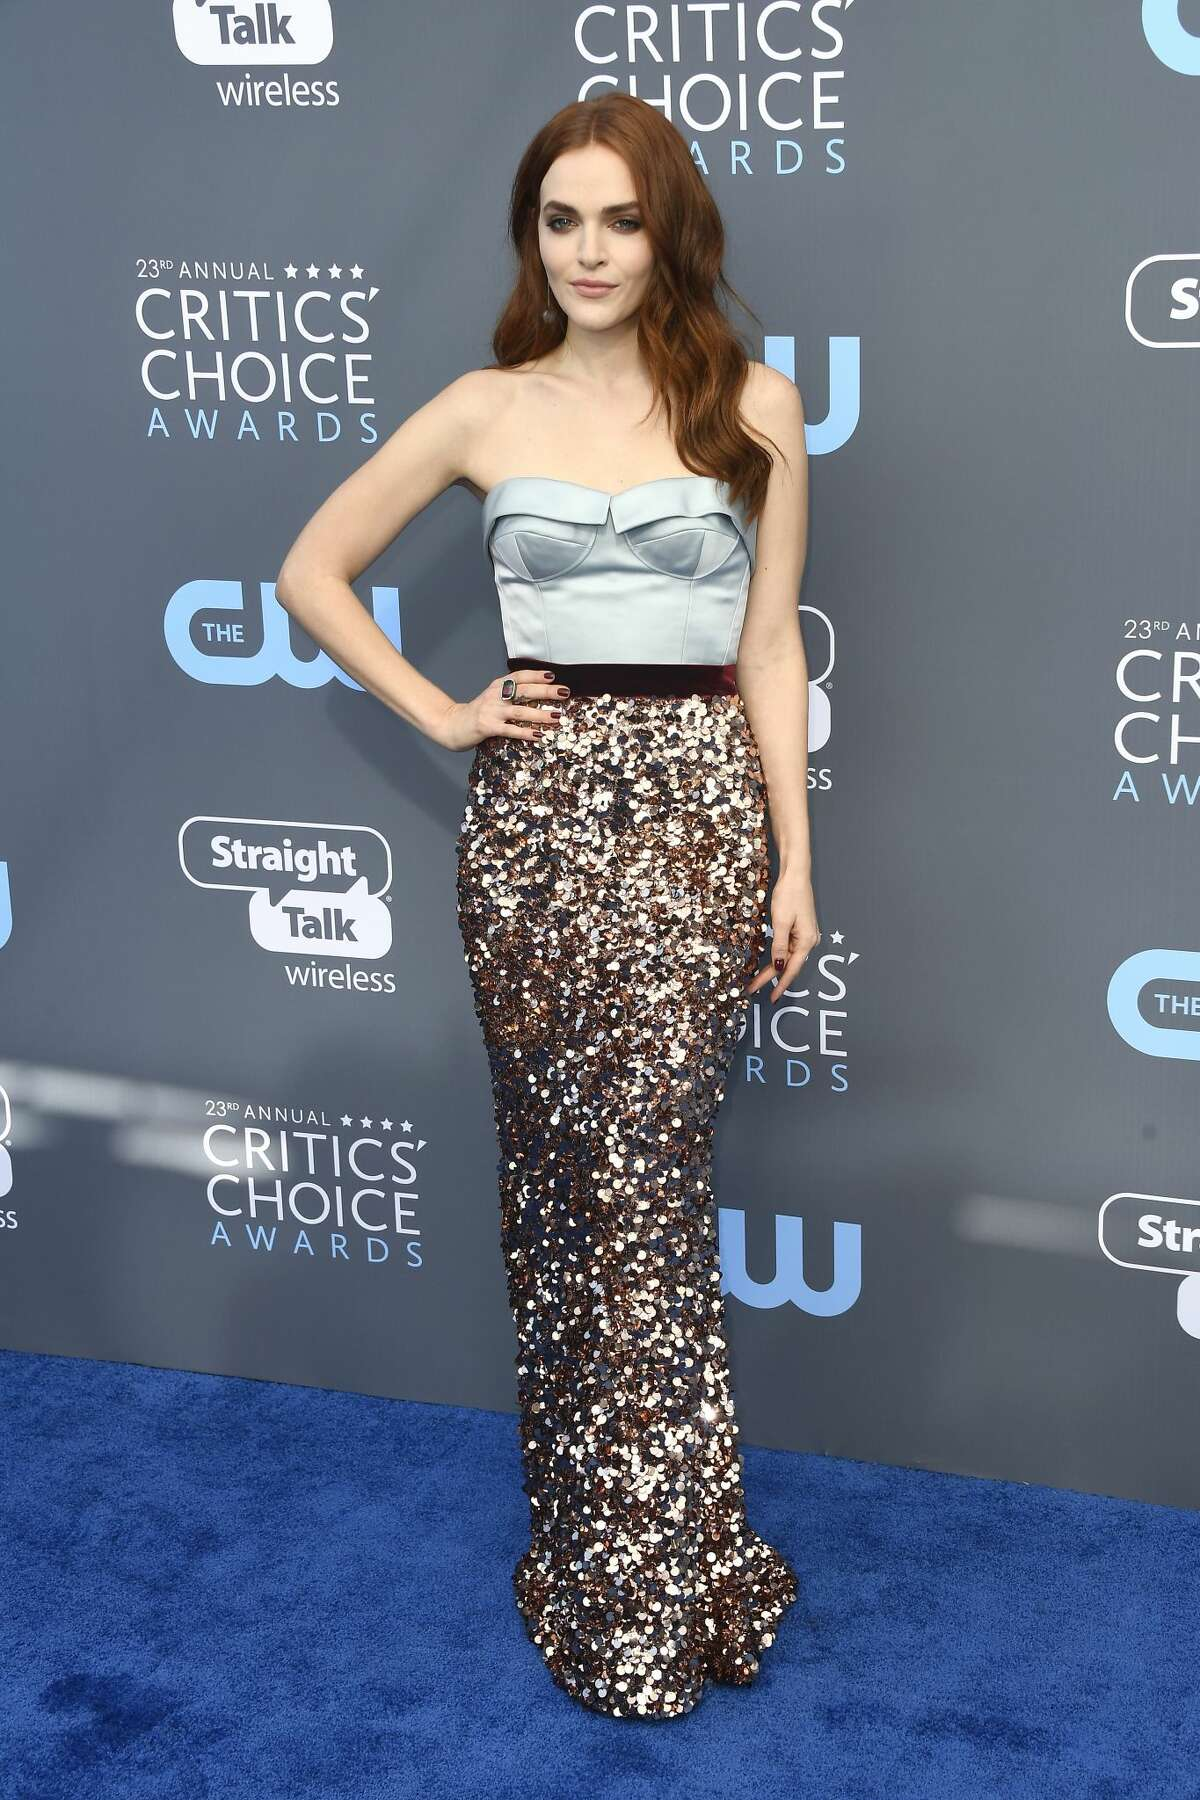 Best:Madeline Brewer's eye catching look is a winning one- way to be different!